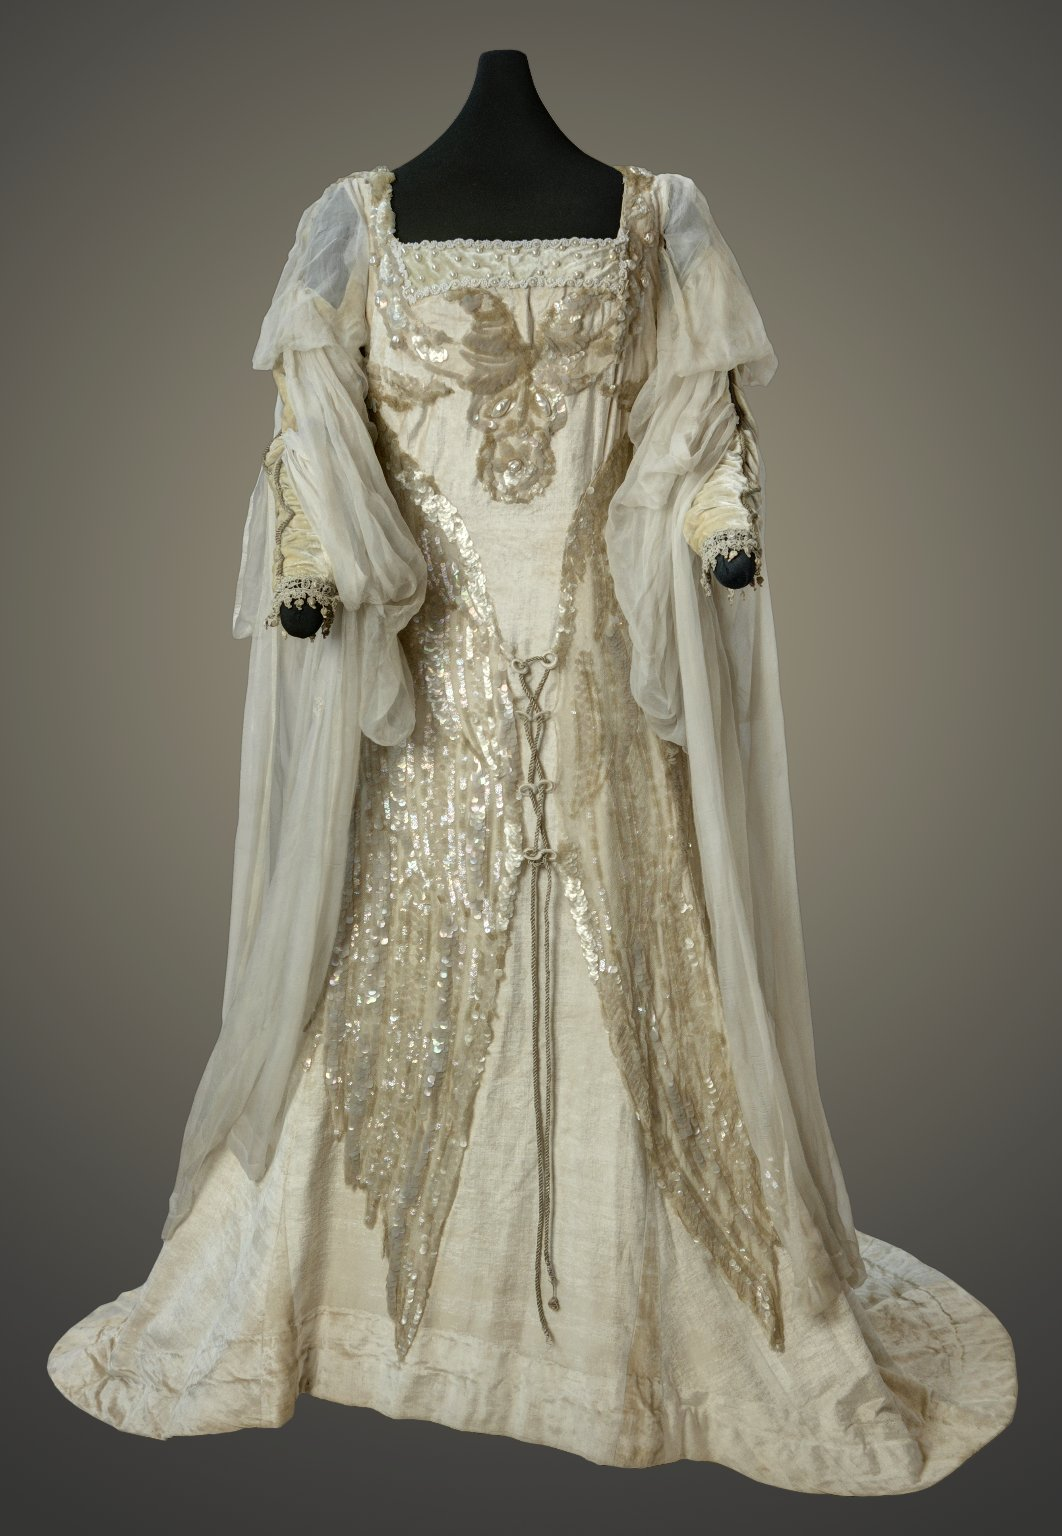 costume worn by Julia Marlowe as Juliet